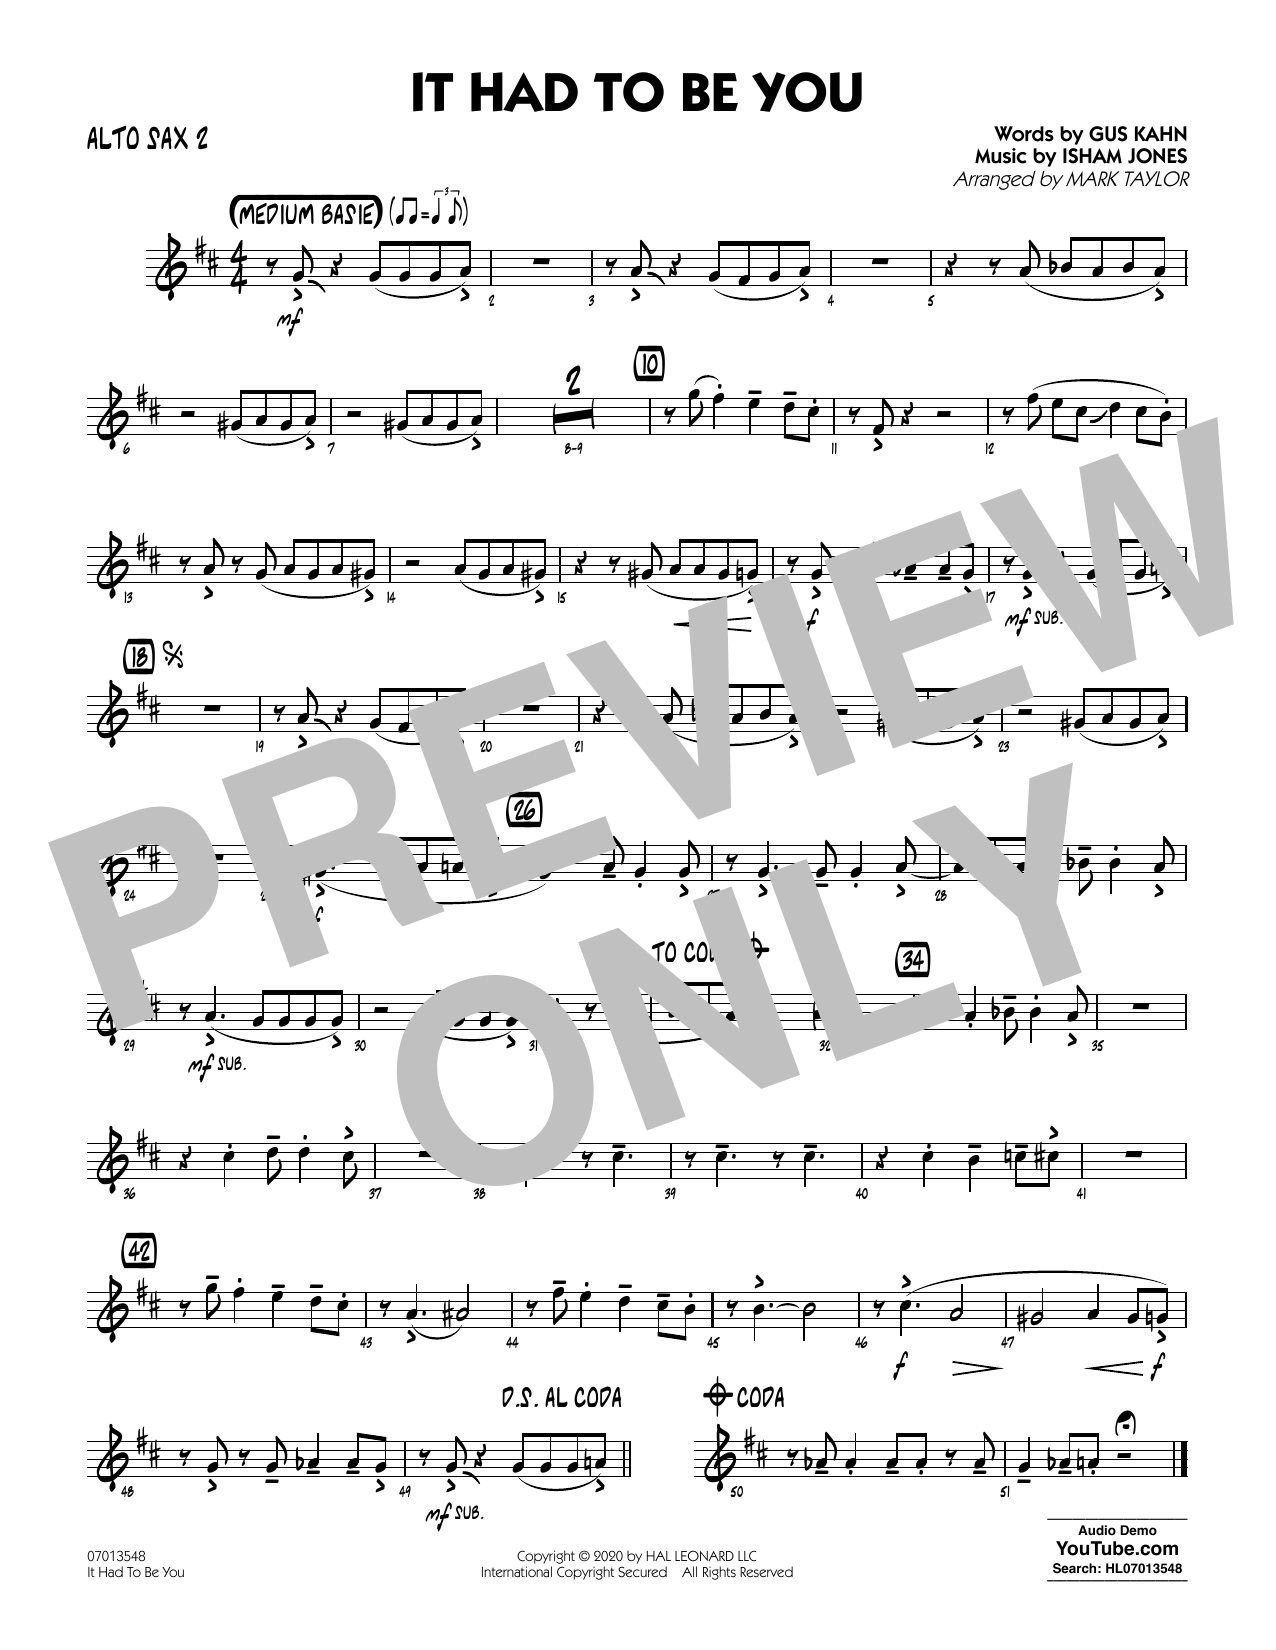 It Had to Be You (arr. Mark Taylor) - Alto Sax 2 Sheet Music